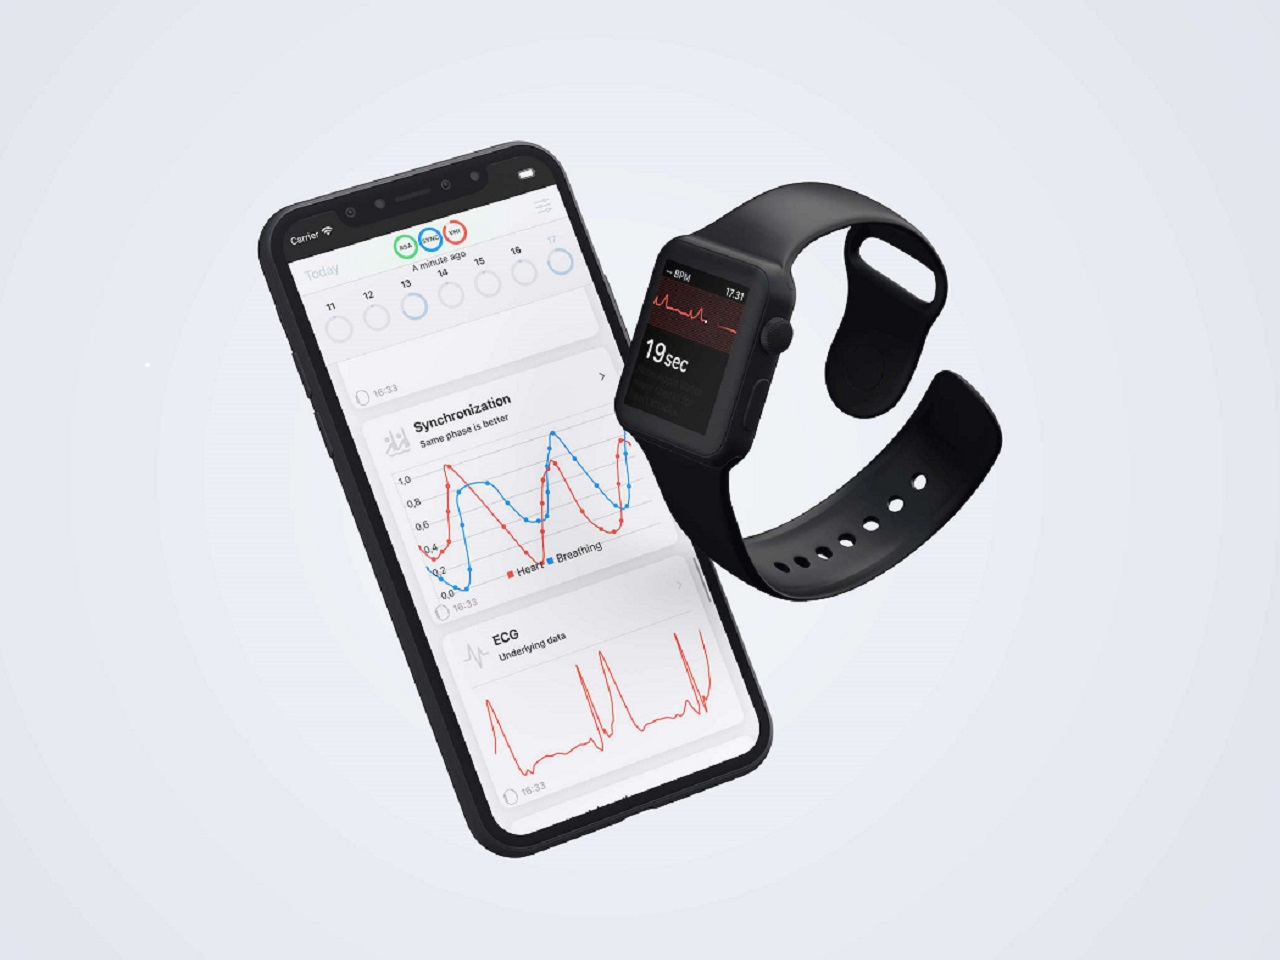 A new type of app for Apple Watch: 'VAGUS ECG - helping your health'